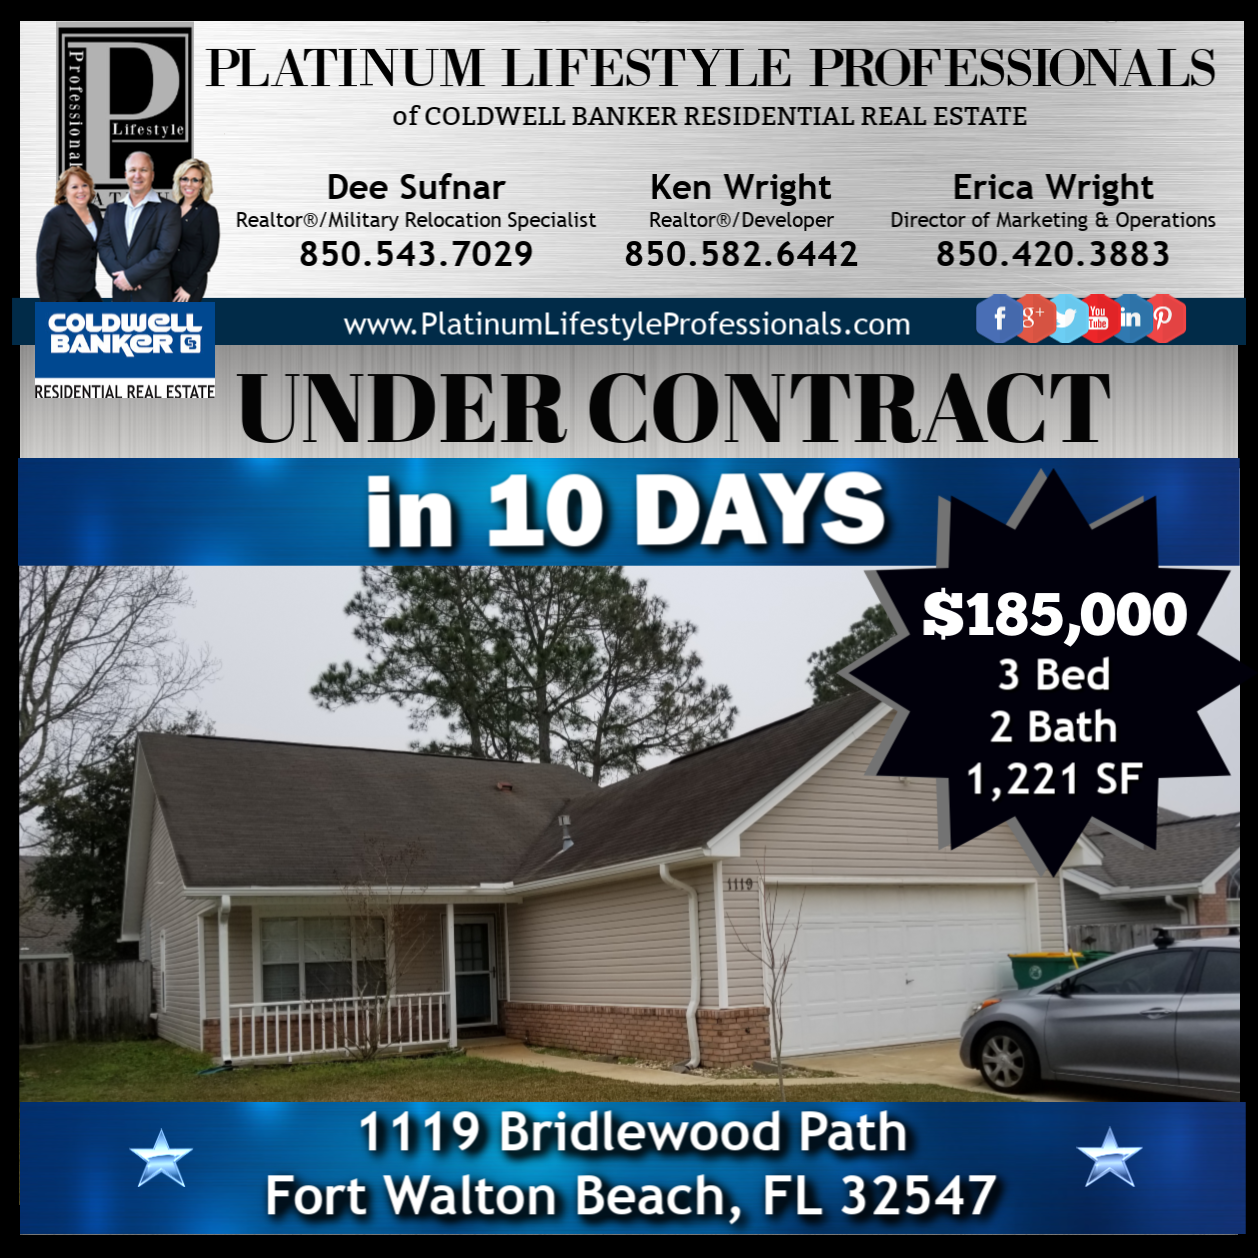 Under Contract In 10 Days With Multiple Offers 3 Bed 2 Bath Home In Fort Walton Beach With Images Fort Walton Beach Commercial Rental Property Residential Real Estate